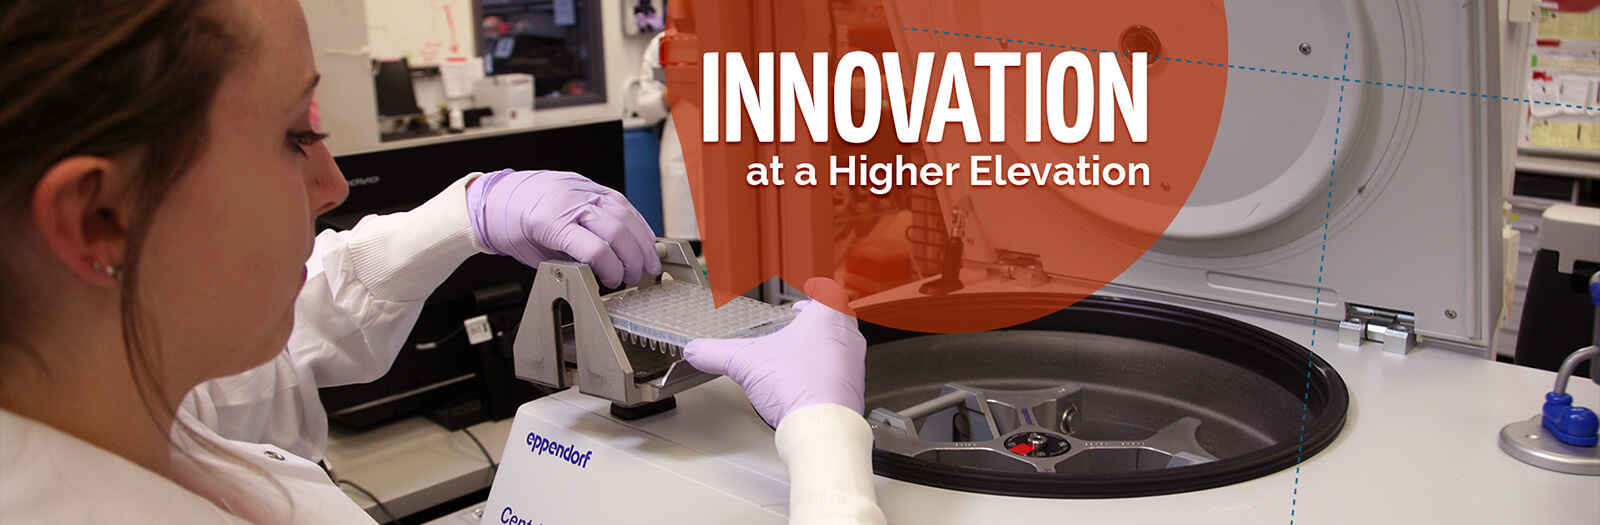 ECoNA - Innovation at a higher elevation